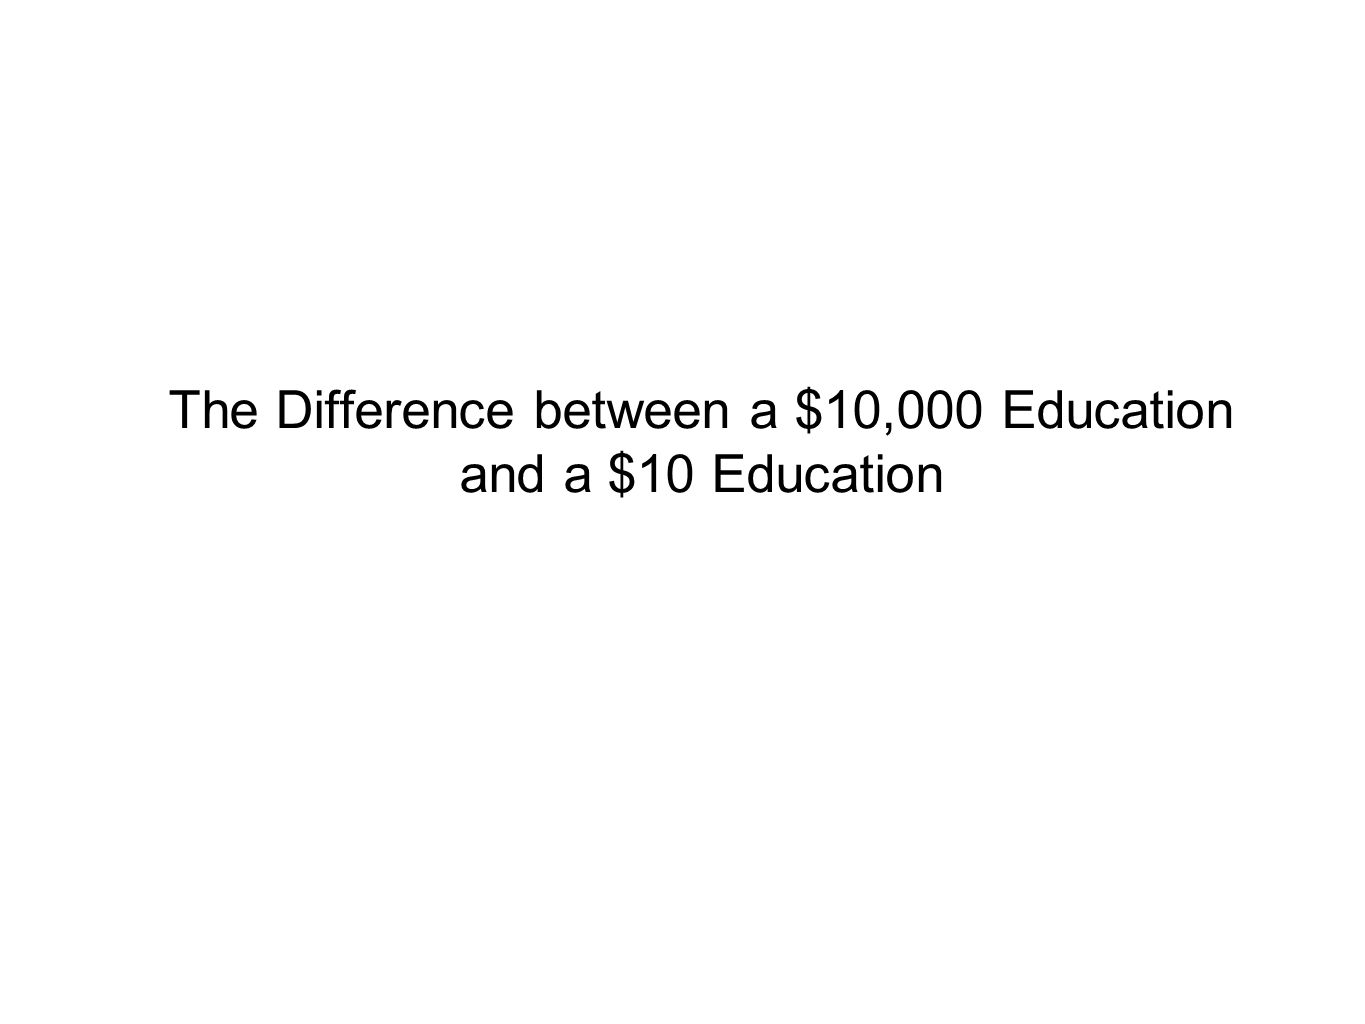 The Difference between a $10,000 Education and a $10 Education